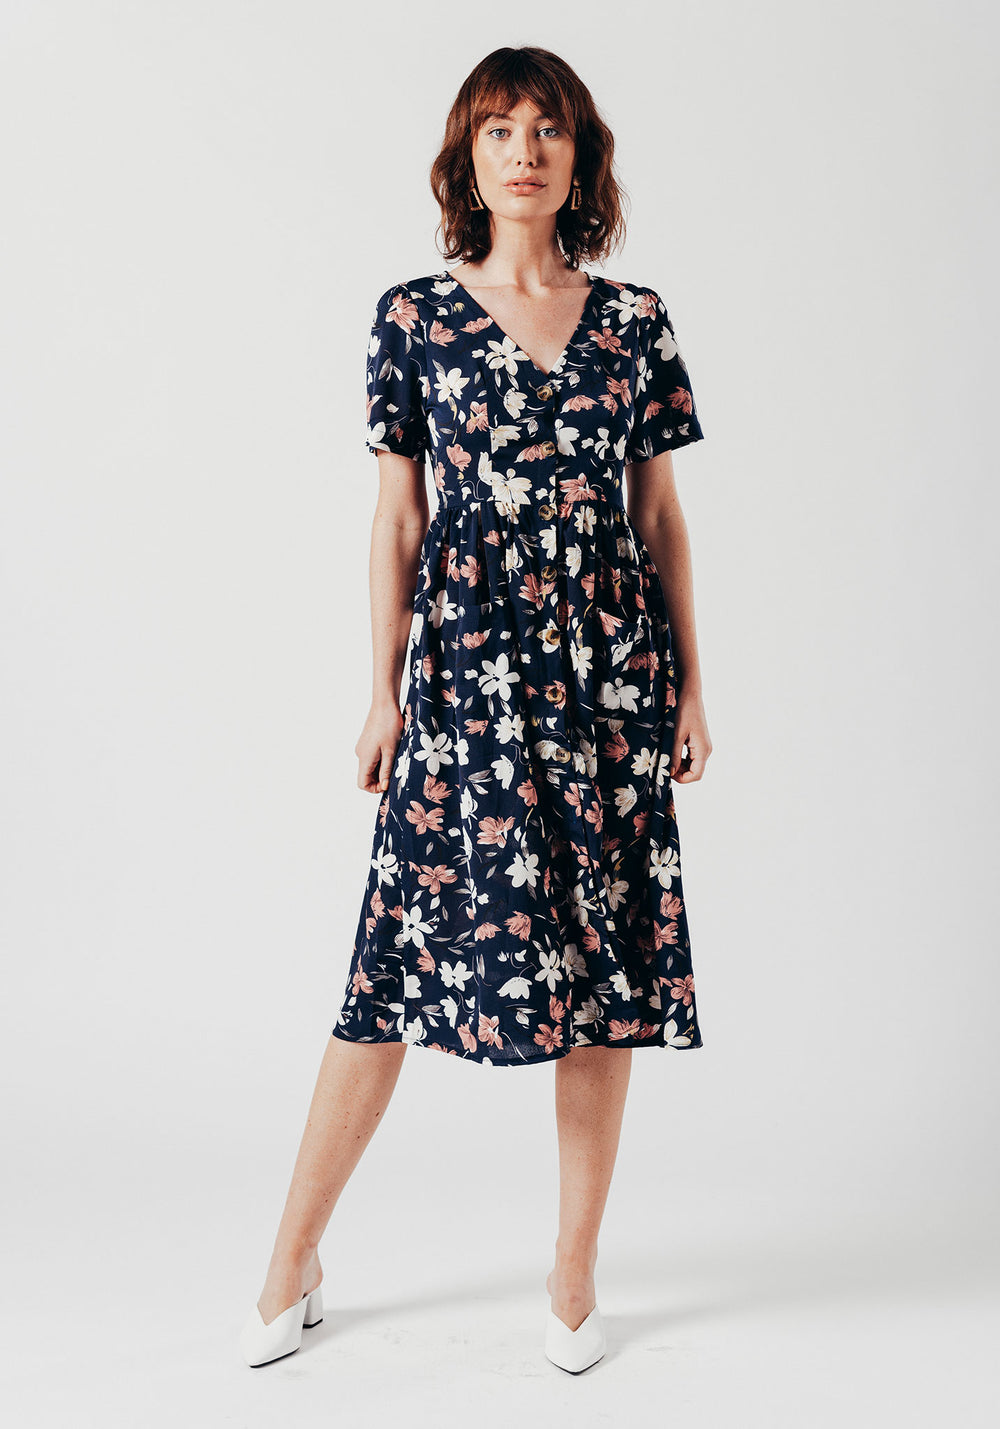 Navy Floral Print in Short Sleeve Midi Dress